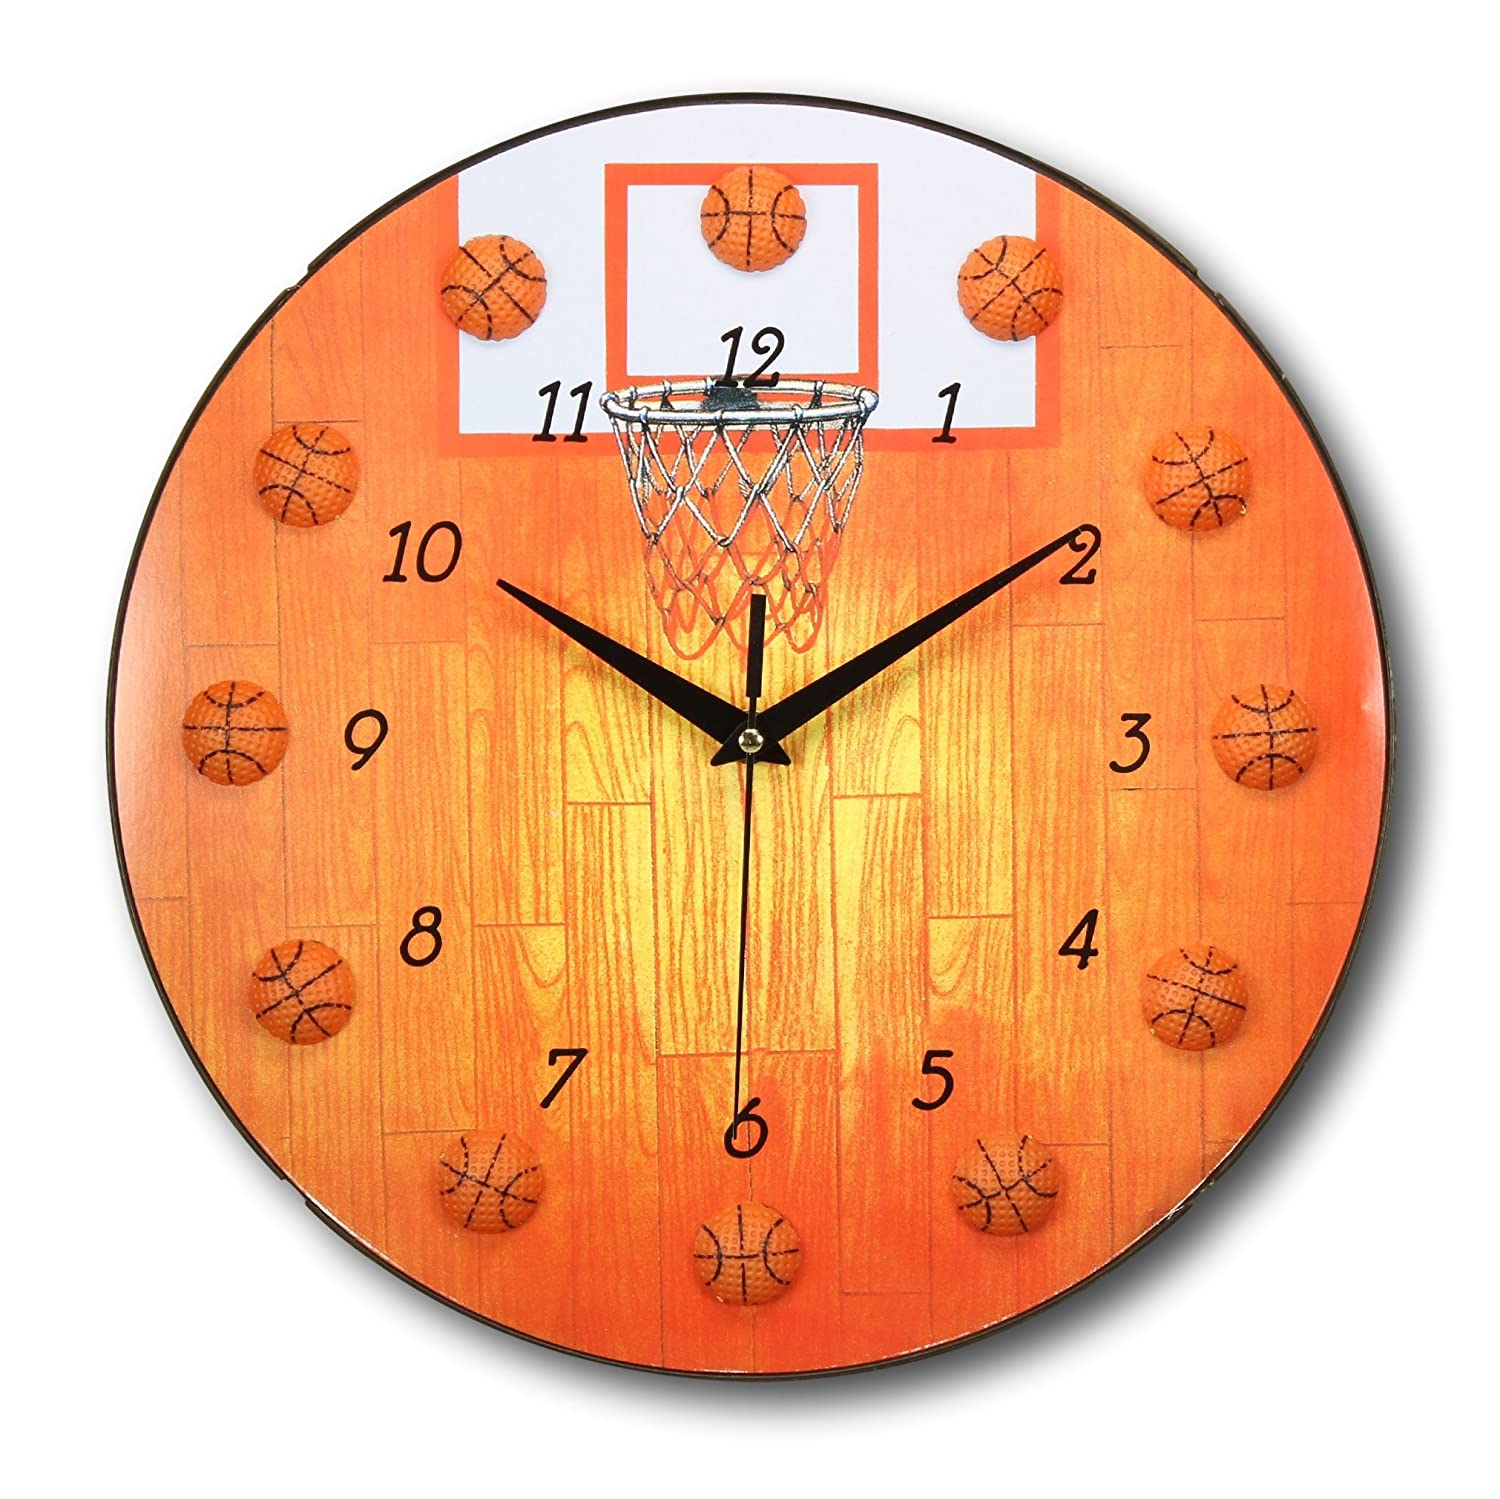 Amazon 13 inch basketball clock sports themed boys and amazon 13 inch basketball clock sports themed boys and girls room wall clocks by bogo brands home kitchen amipublicfo Images